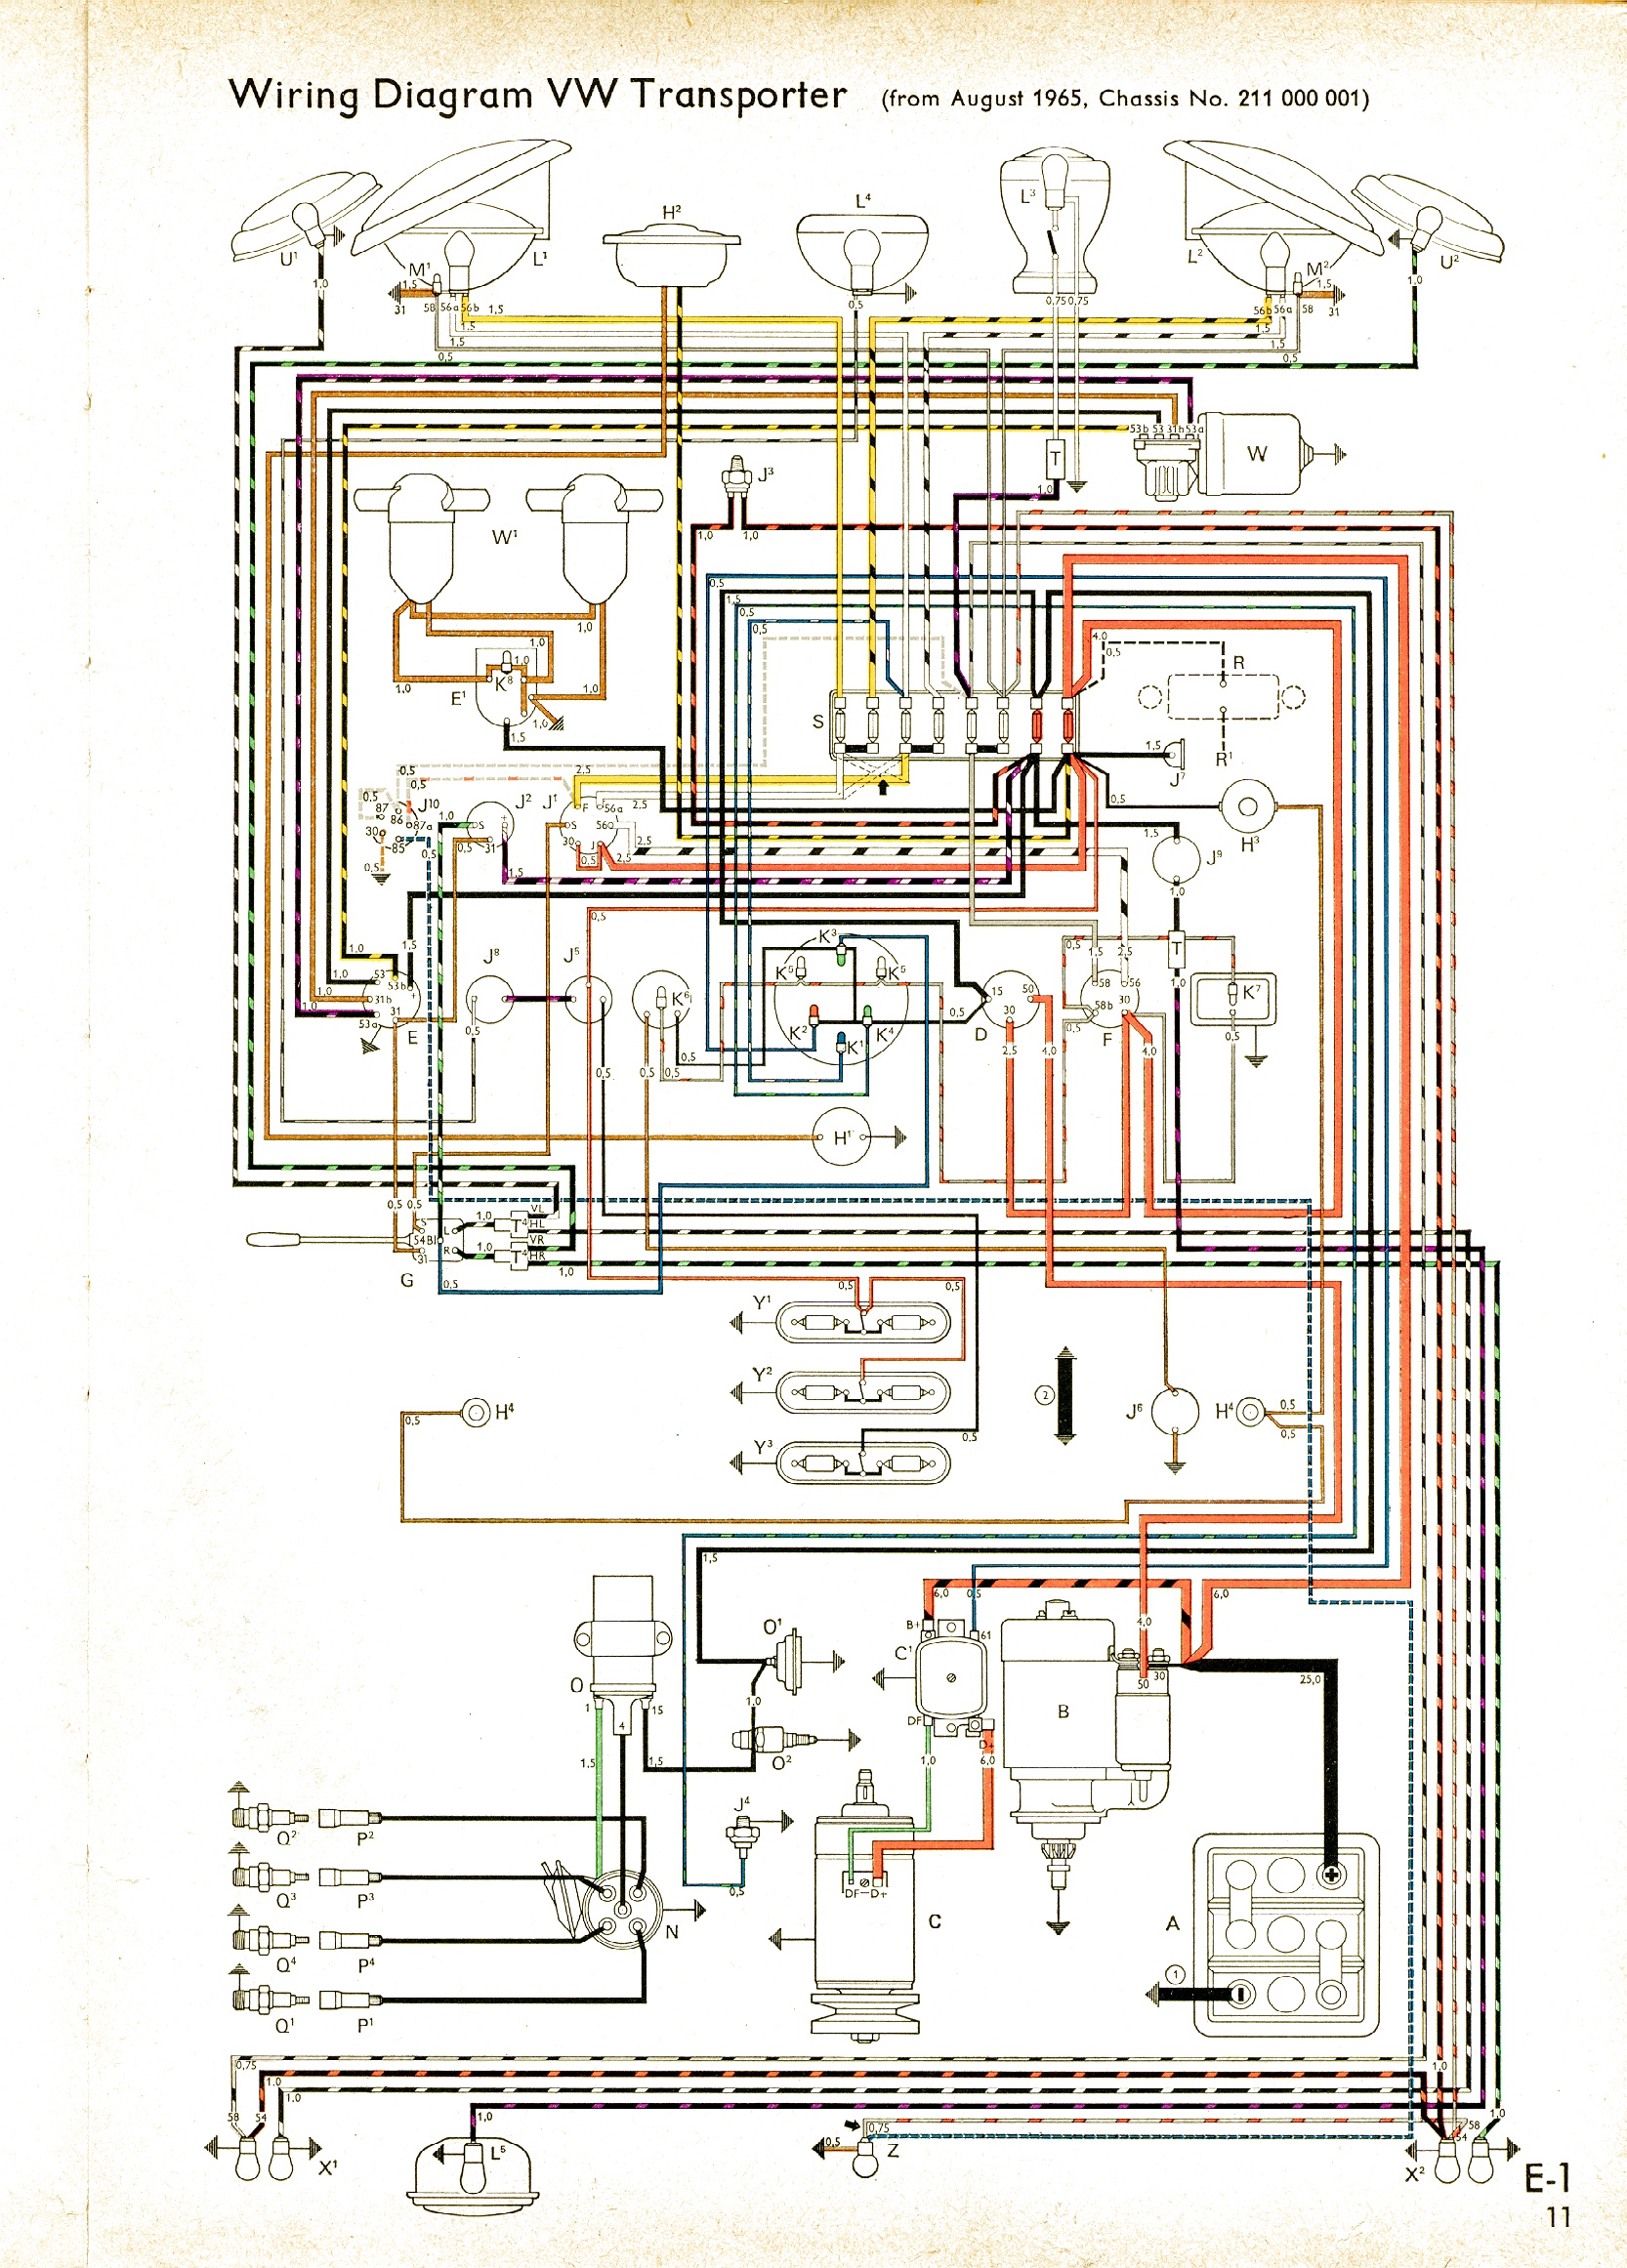 bus 65 vintagebus com vw bus (and other) wiring diagrams 2002 jetta headlight wiring diagram at creativeand.co